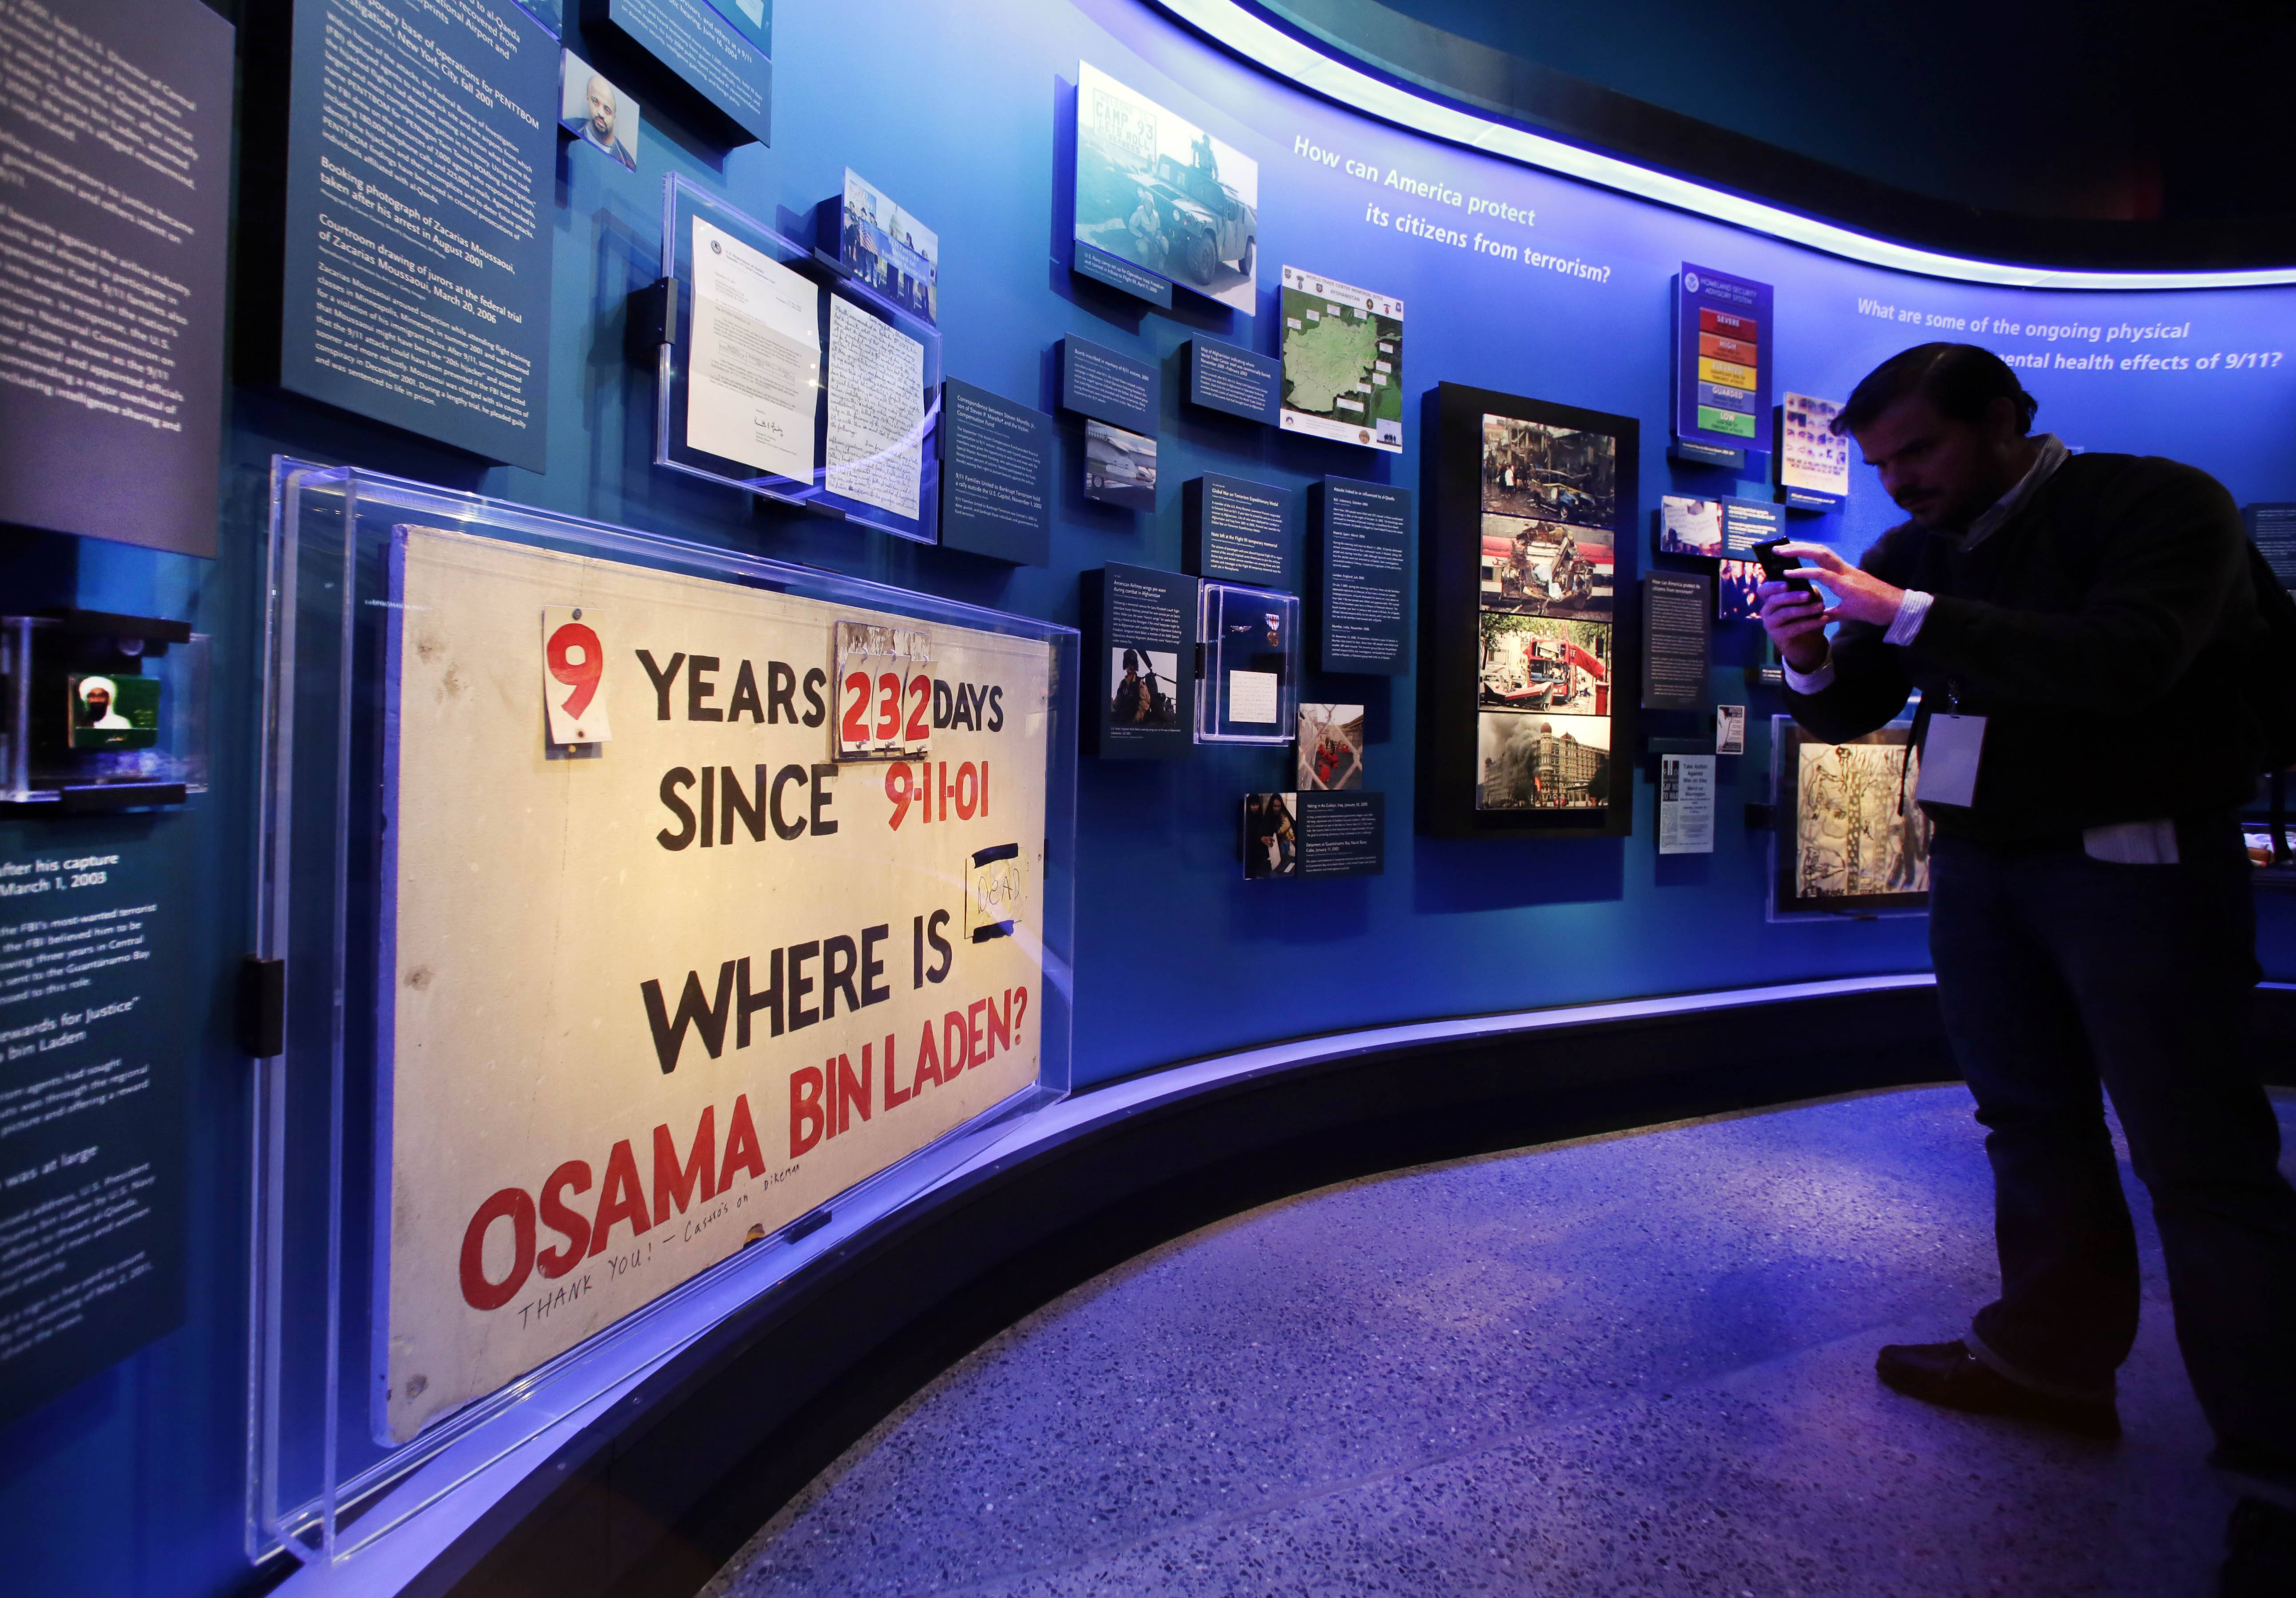 A sign tracking the time Osama bin Laden was at large is displayed at the National Sept. 11 Memorial Museum in New York. The museum is the latest in a series of memorials-as-museums that seek to honor the dead while presenting a full, fair history of the event that killed them.